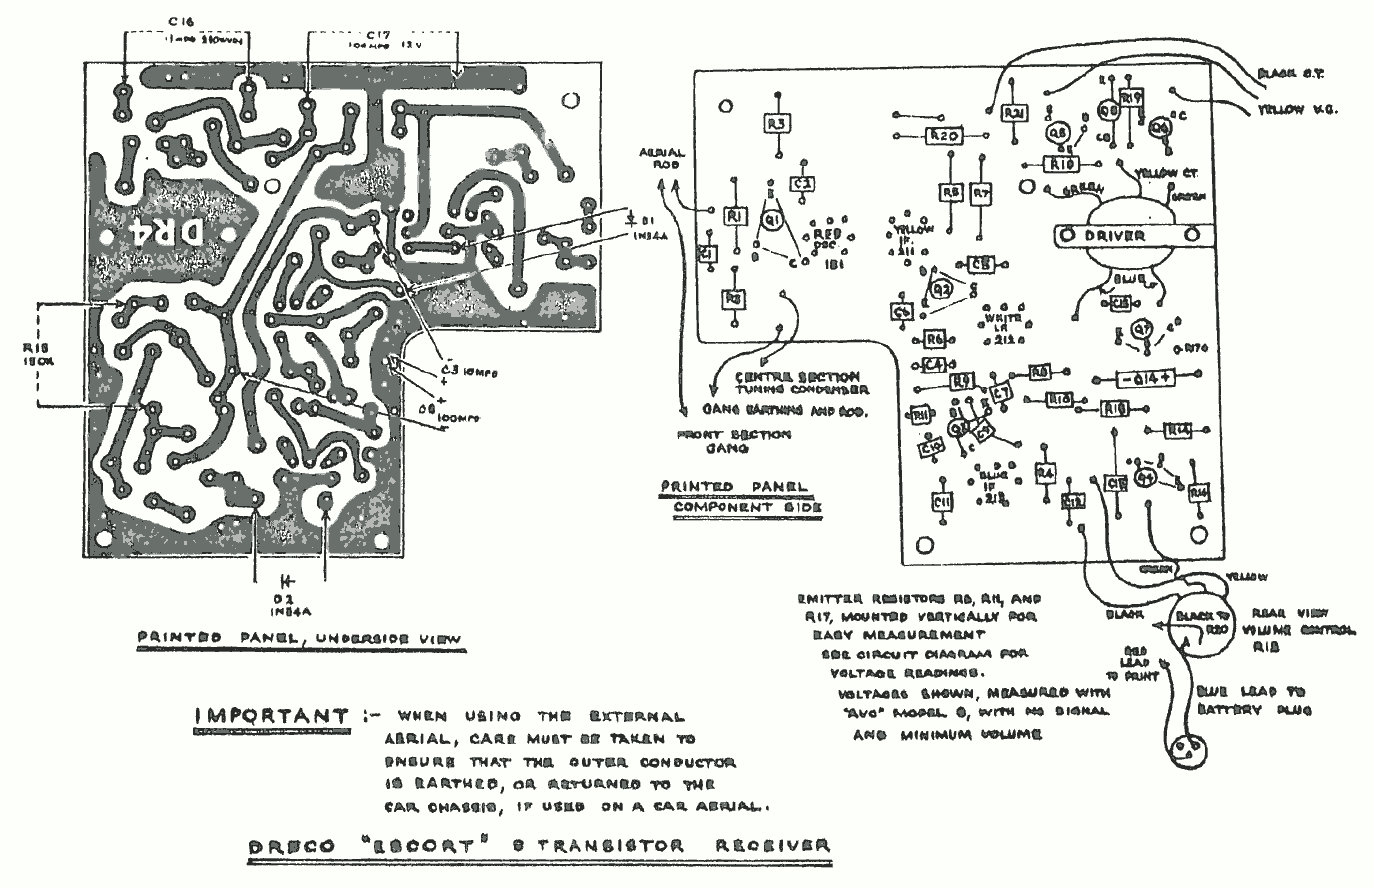 1963 Dreco Escort Layout